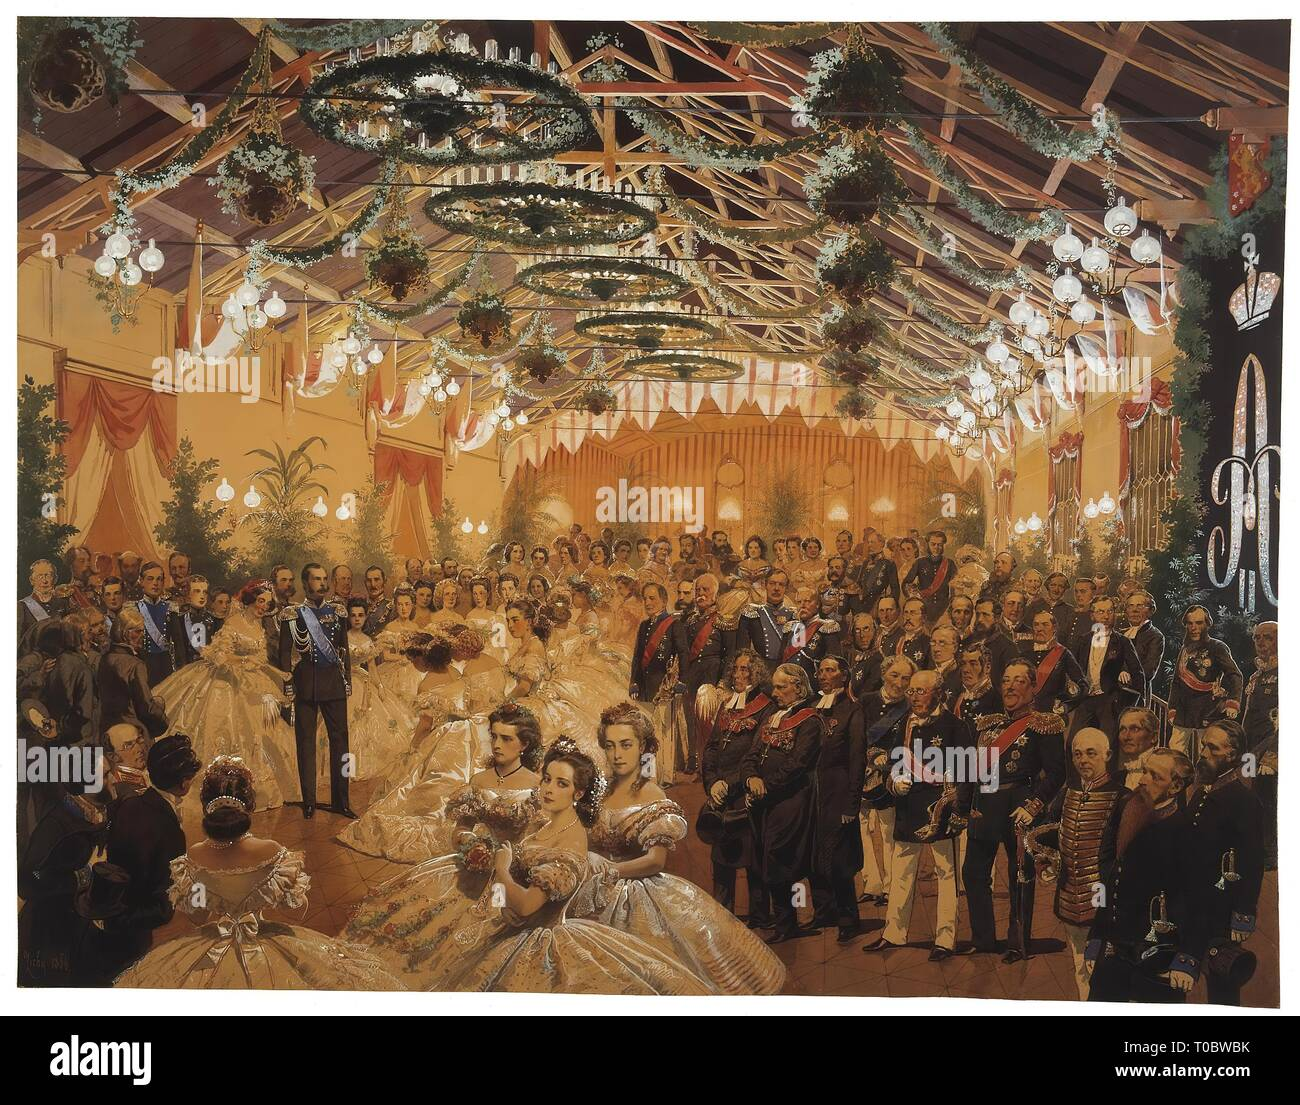 'Ball in Honour of Alexander II Arranged in Helsingfors in September 1863 on the Premises of the Railway Station'. Hungary-Russia, 1864. Dimensions: 47,5x61,5 cm. Museum: State Hermitage, St. Petersburg. Author: MIHALY VON ZICHY . MIHALY ZICHY. - Stock Image